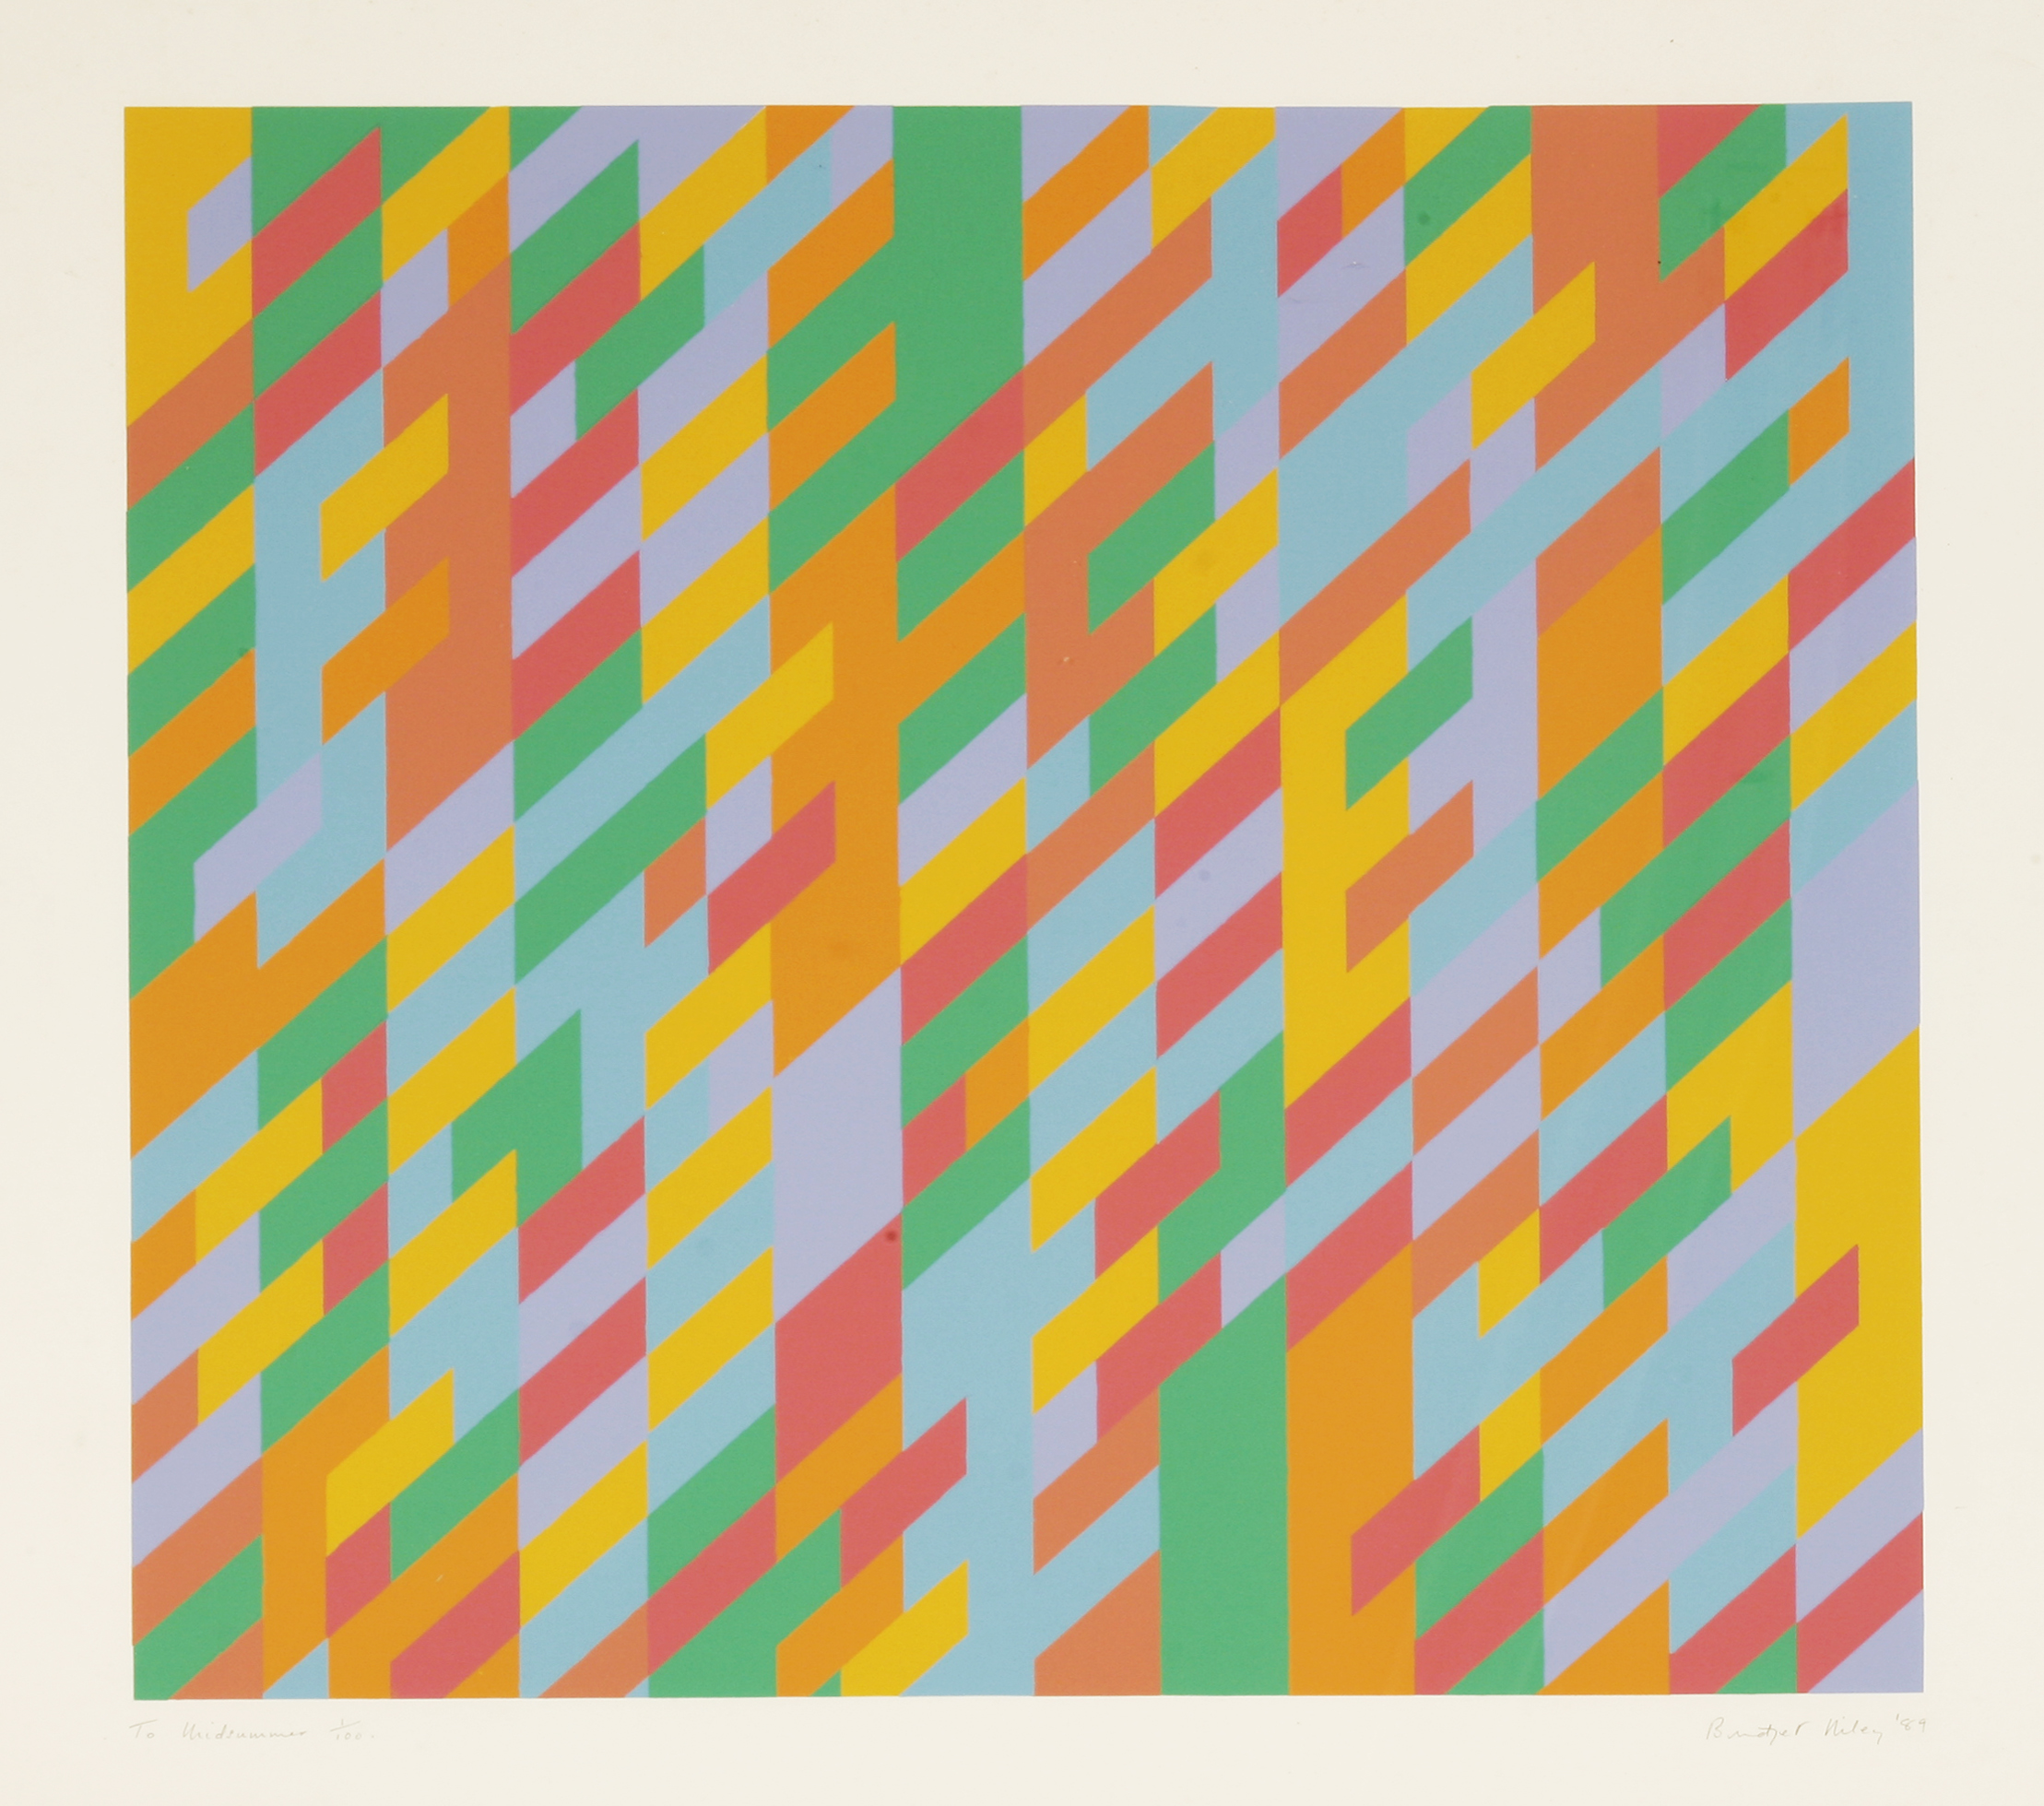 Bridget Riley - To Midsummer (Schubert 34)